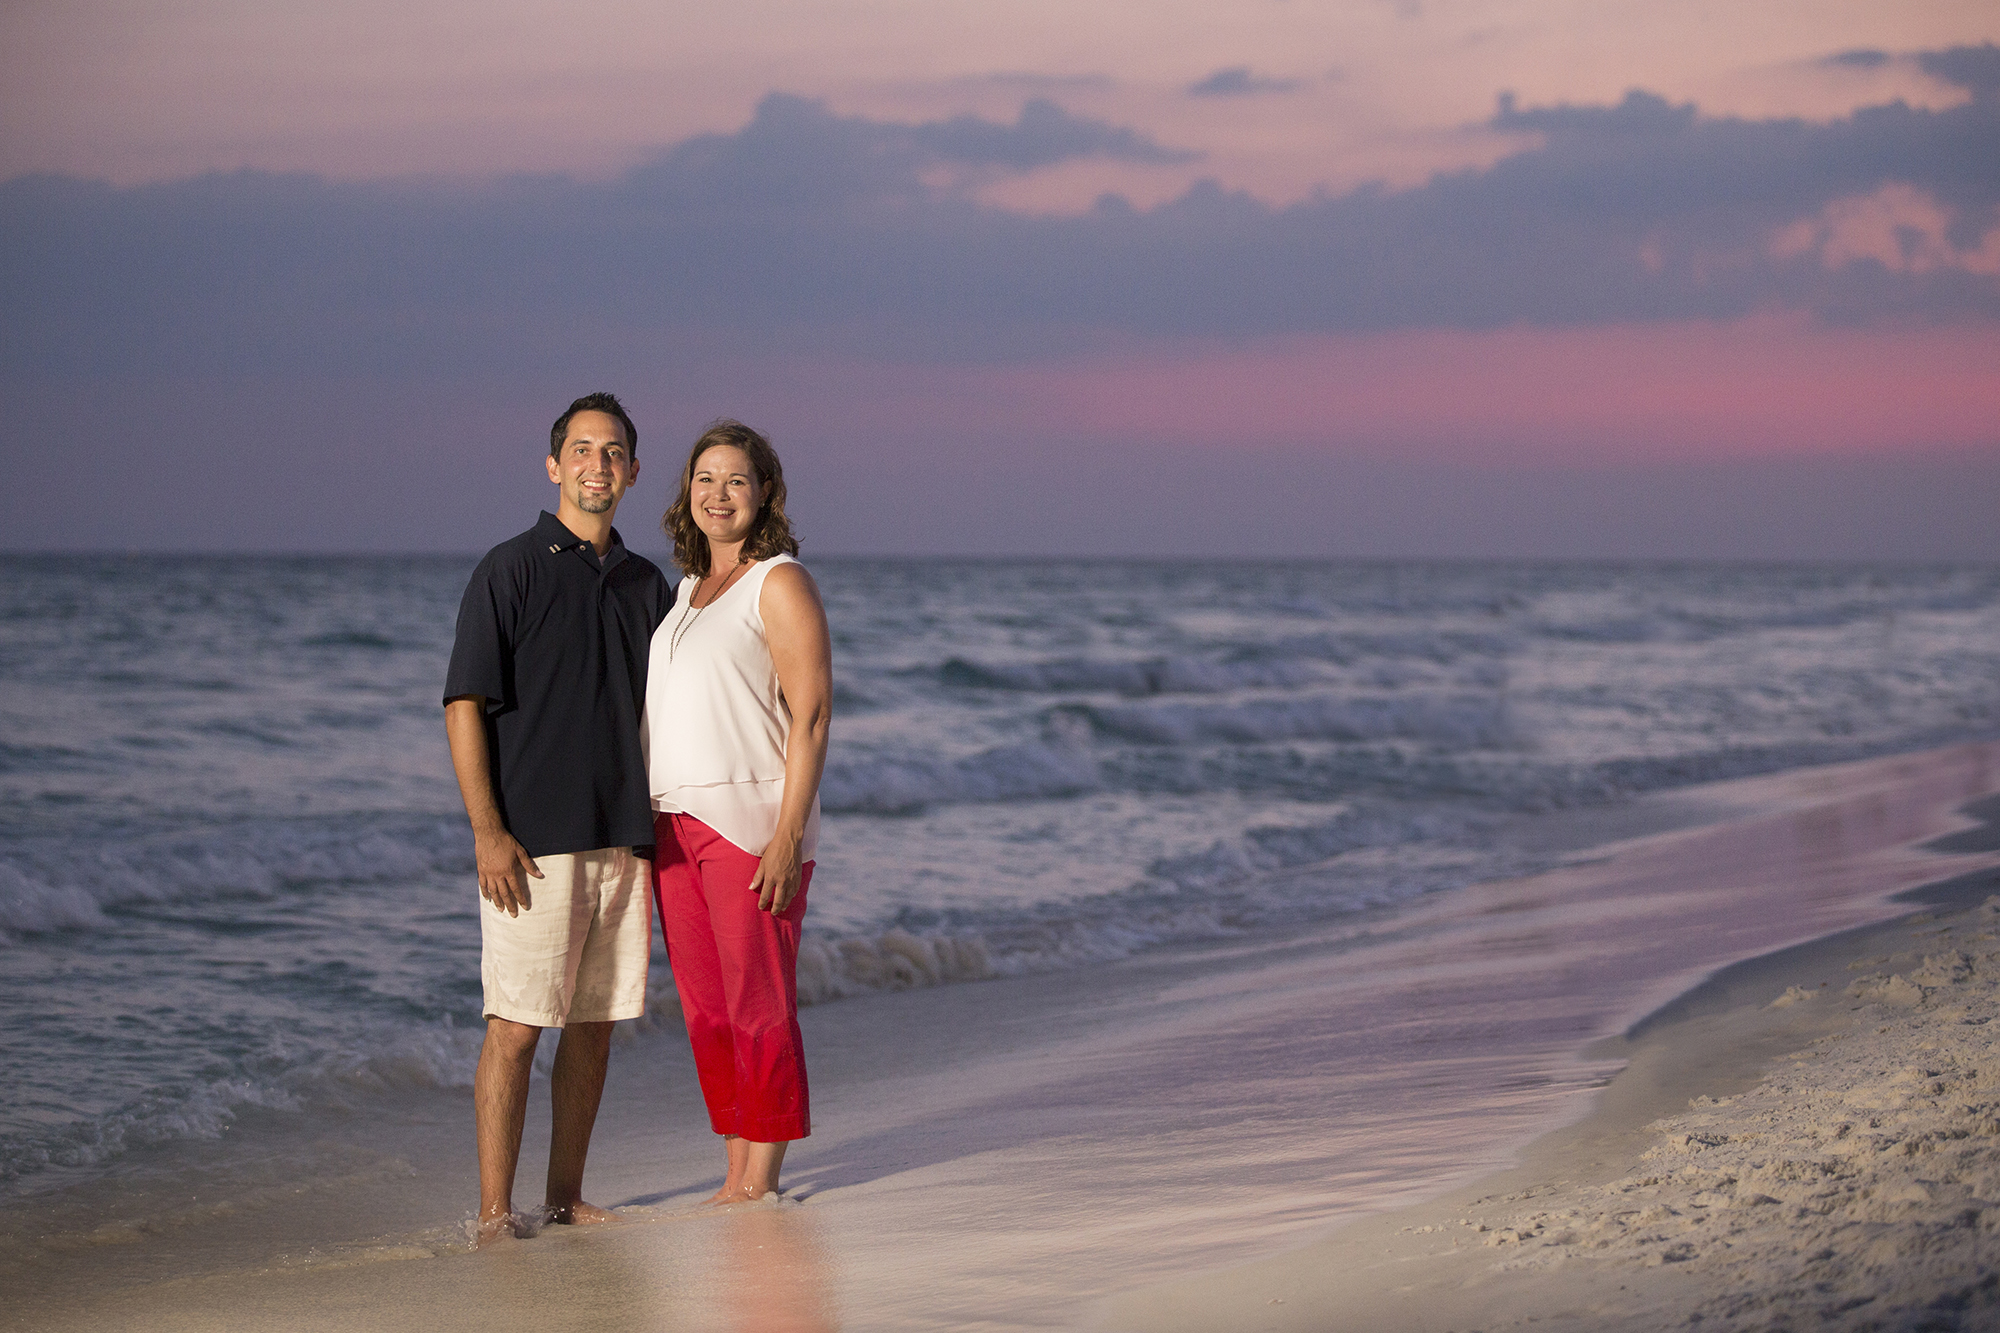 Beach Family Portrait Photo Destin Florida